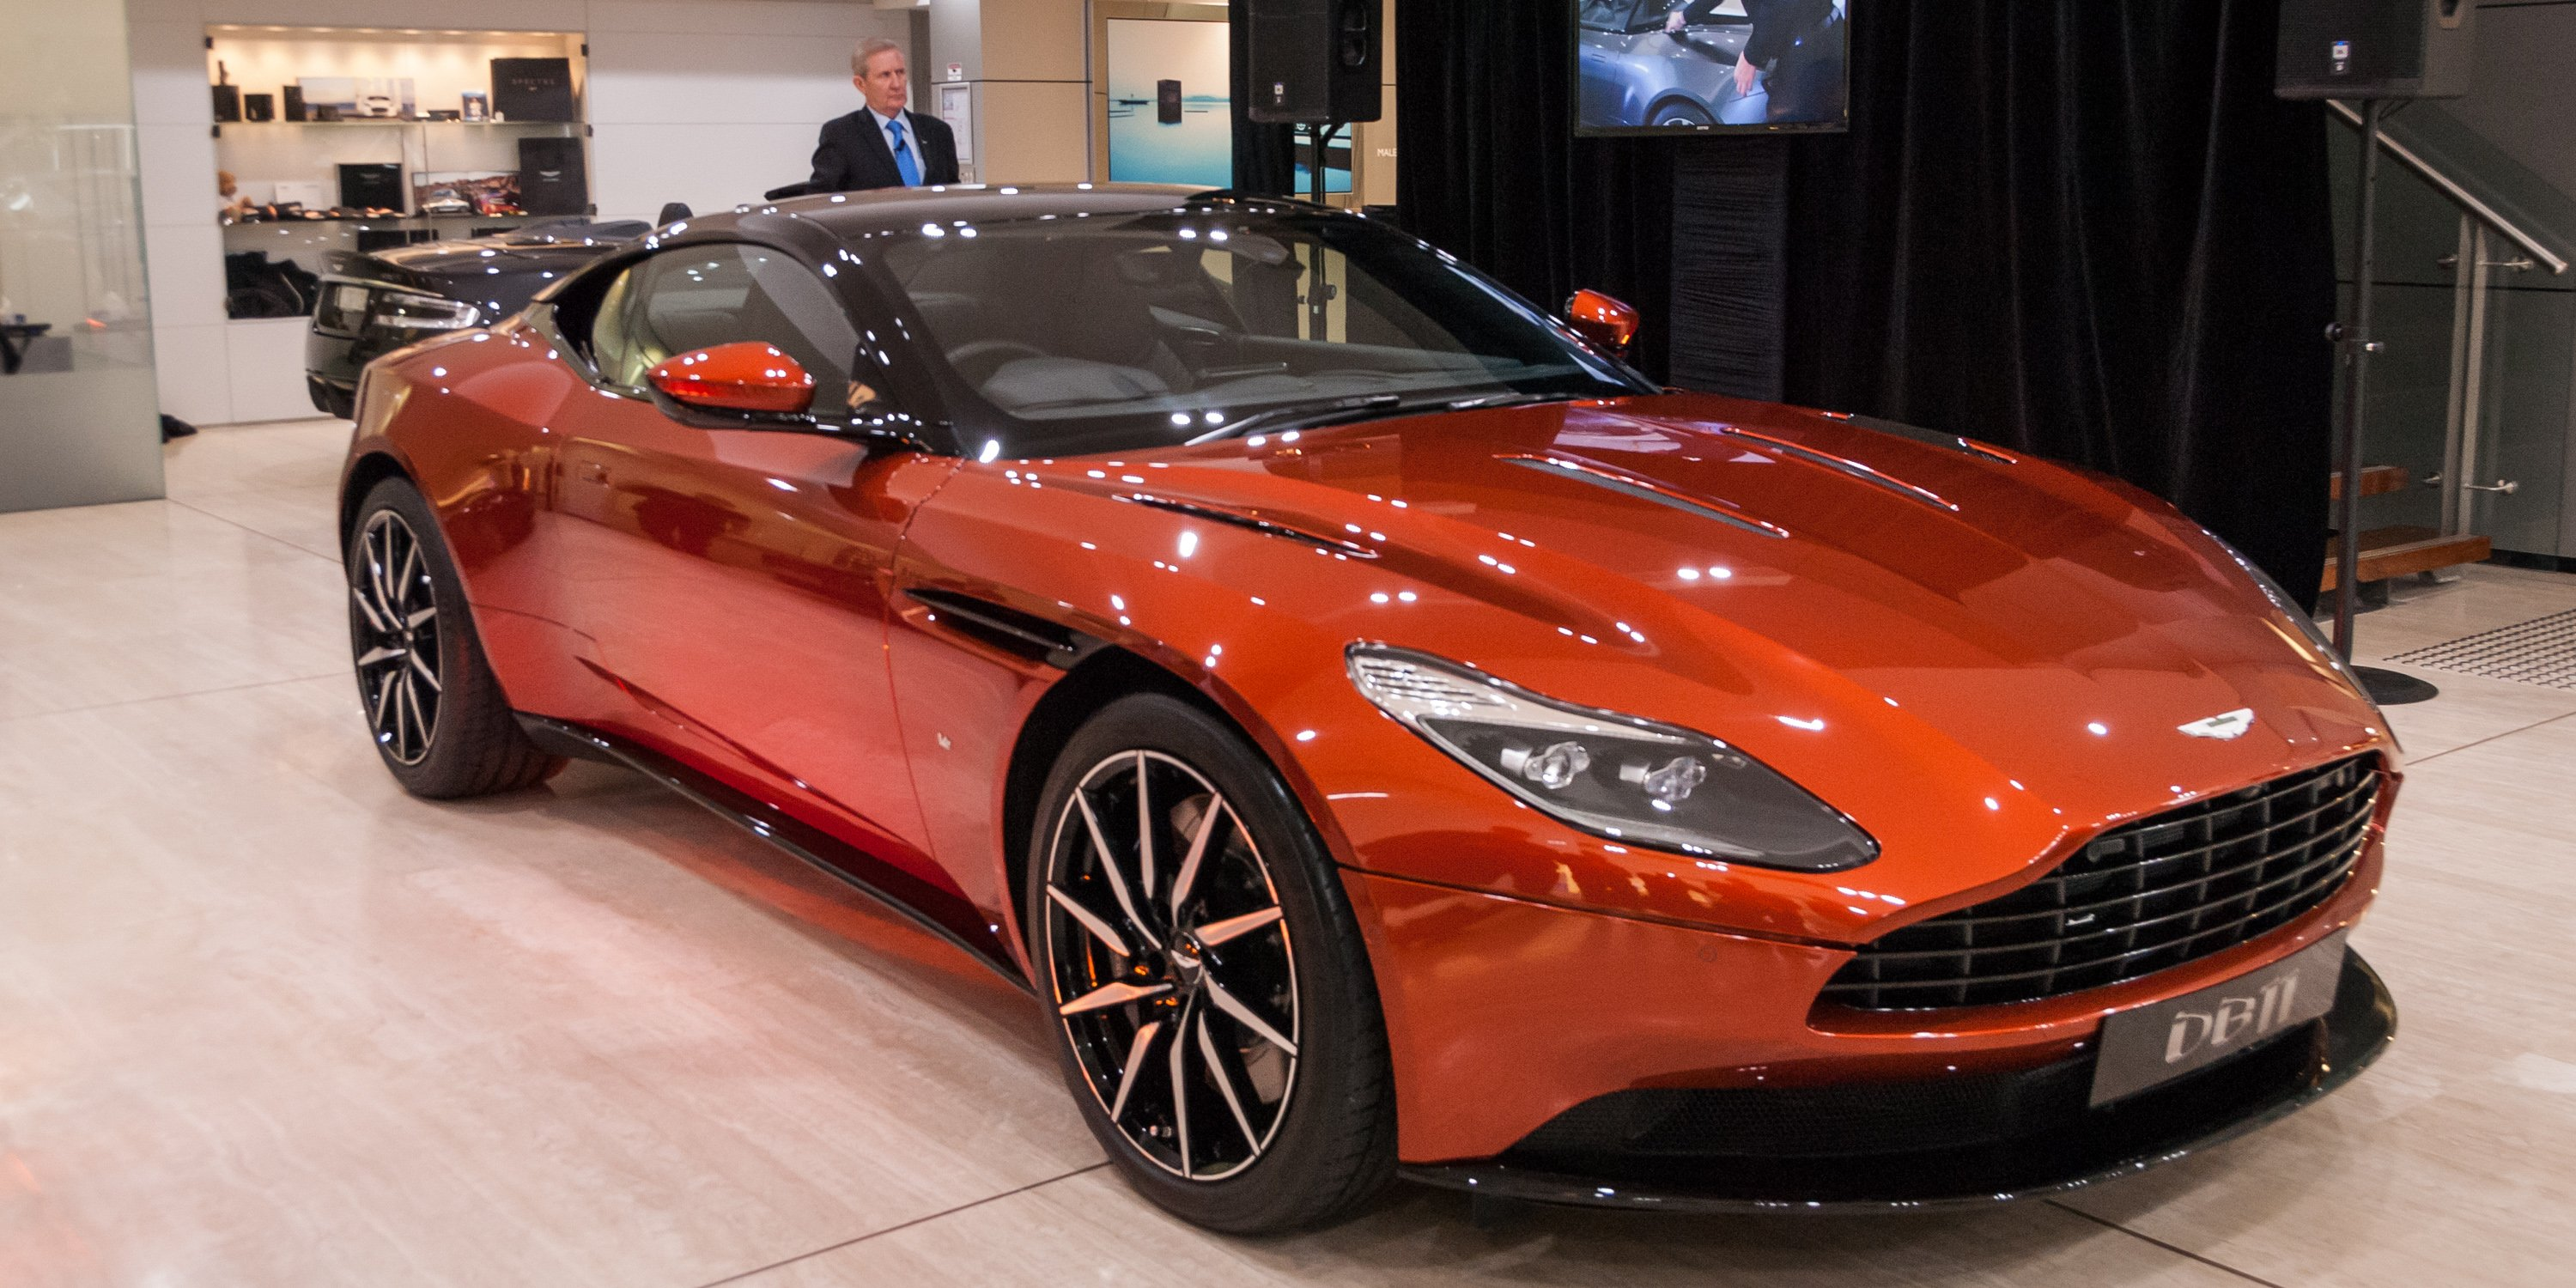 2017 Aston Martin DB11 Makes Its Australian Debut